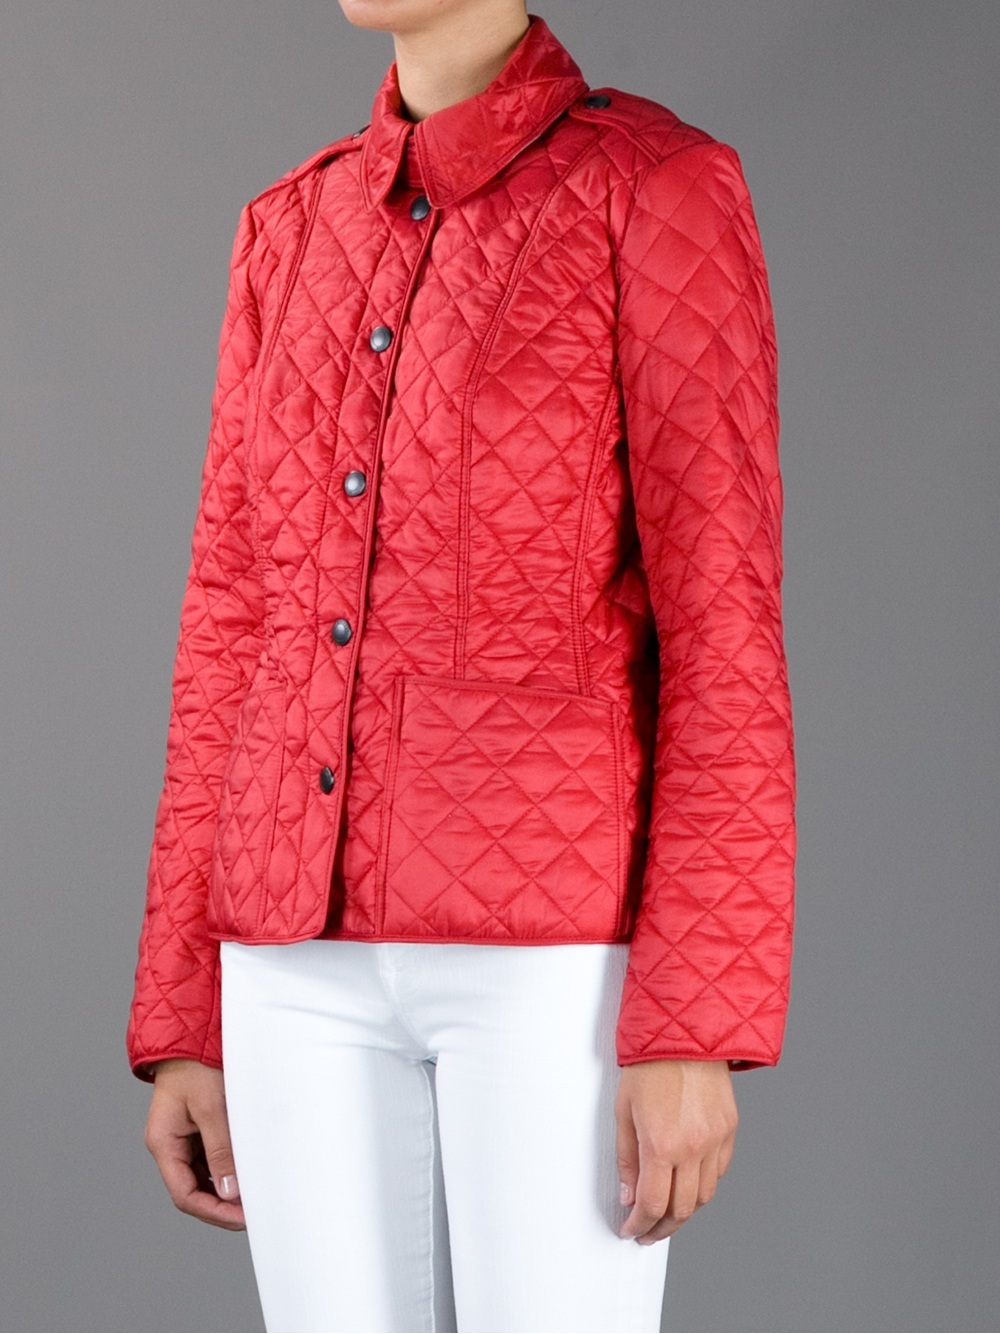 Burberry Brit Kencott Quilted Jacket In Red Lyst